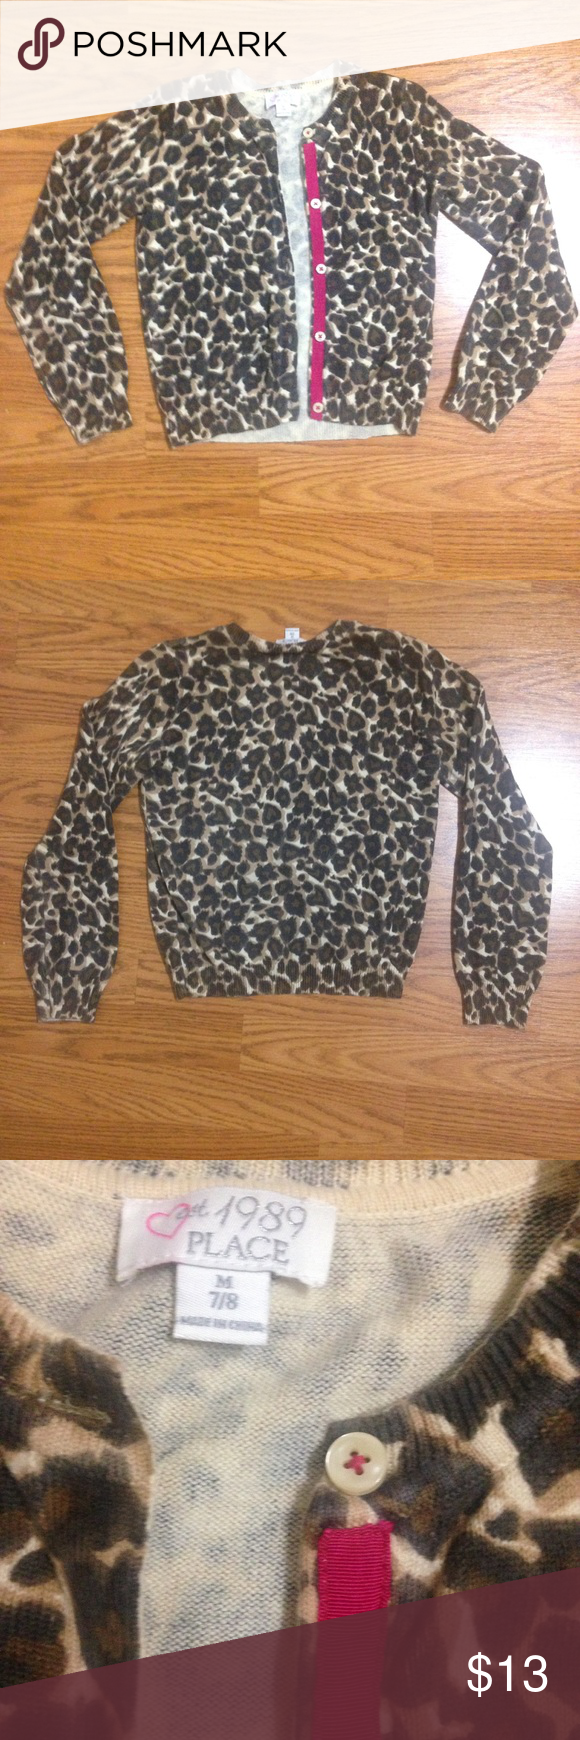 TCP Girls Cardigan leopard print sweater 7/8 M | Cheetah print ...